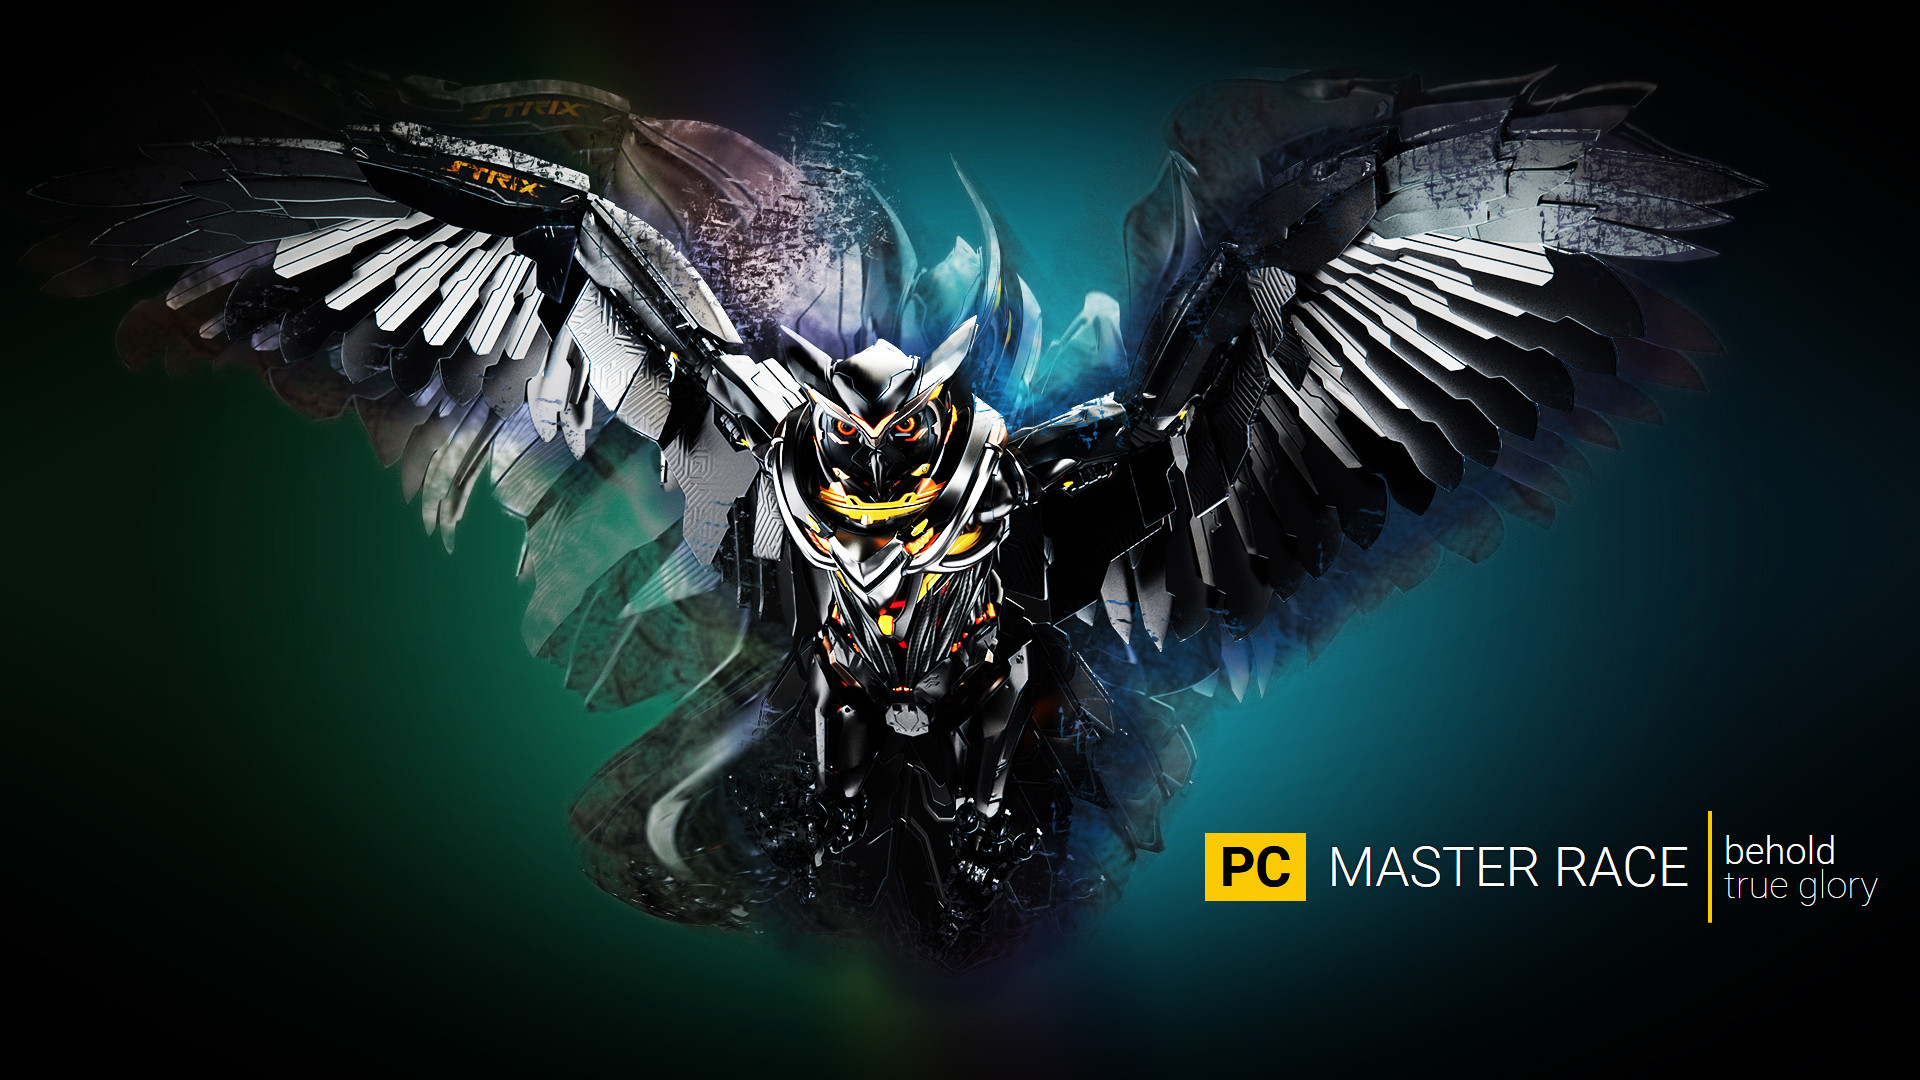 76 Asus Strix Wallpapers on WallpaperPlay 1920x1080